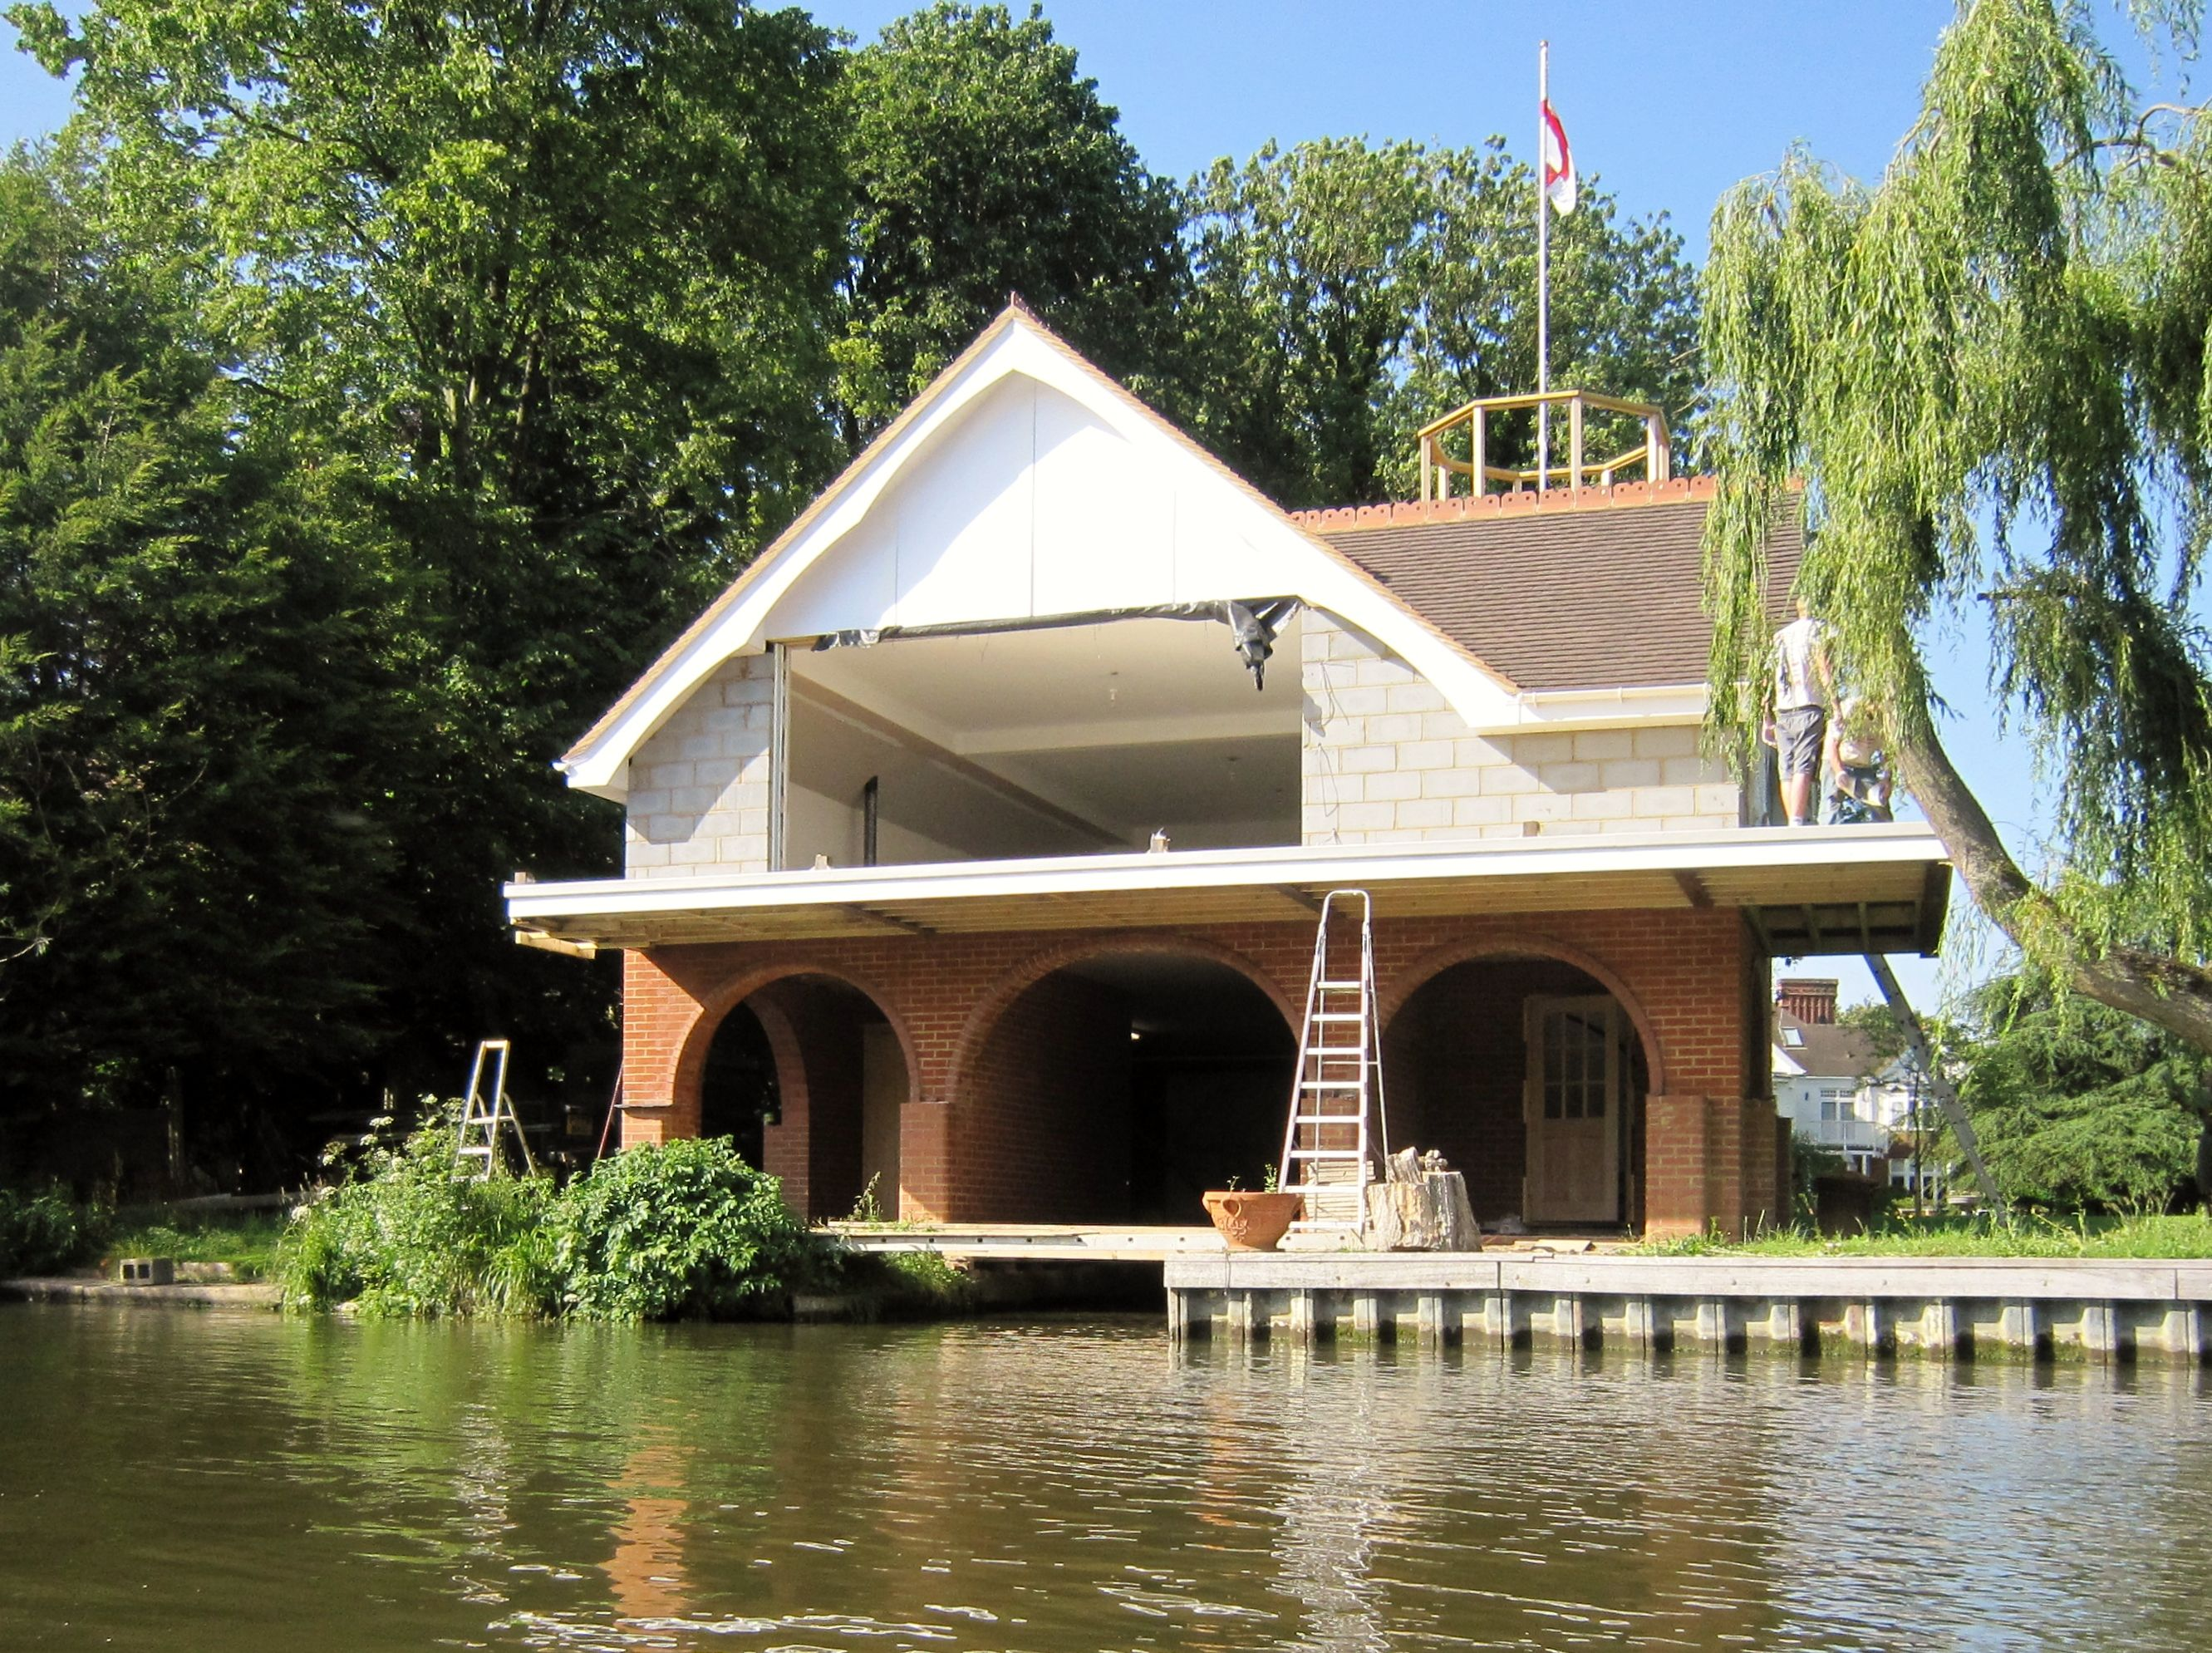 Houses On The River Thames With Images House Styles Holiday